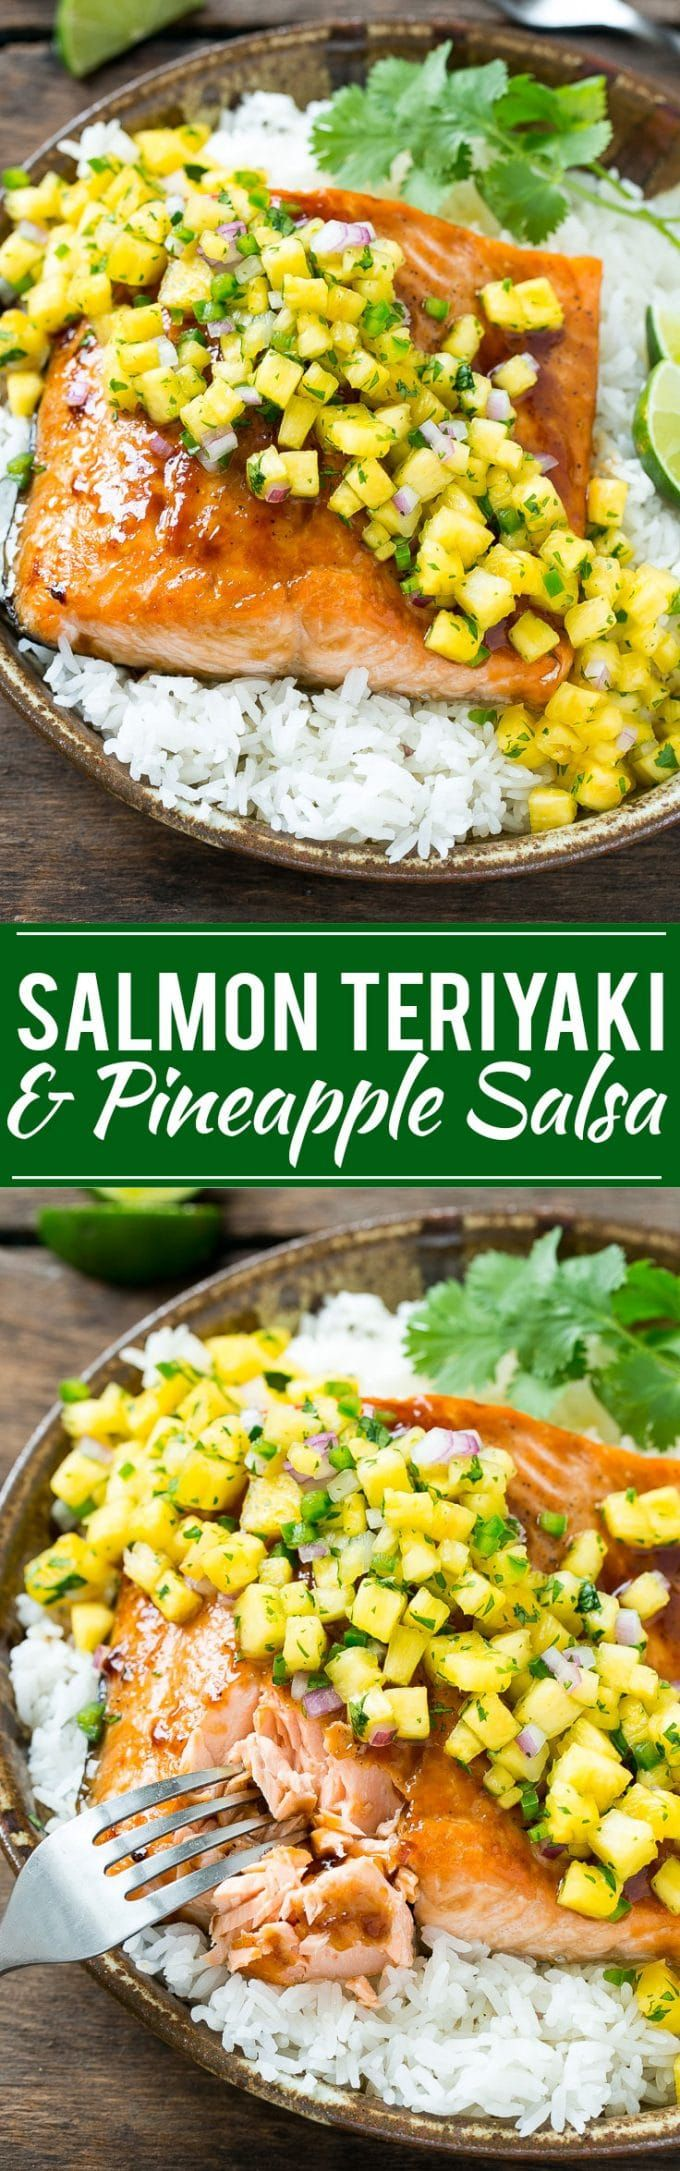 This recipe for salmon teriyaki is broiled salmon fillets brushed with a homemade teriyaki sauce and finished off with a sweet and tangy pineapple salsa